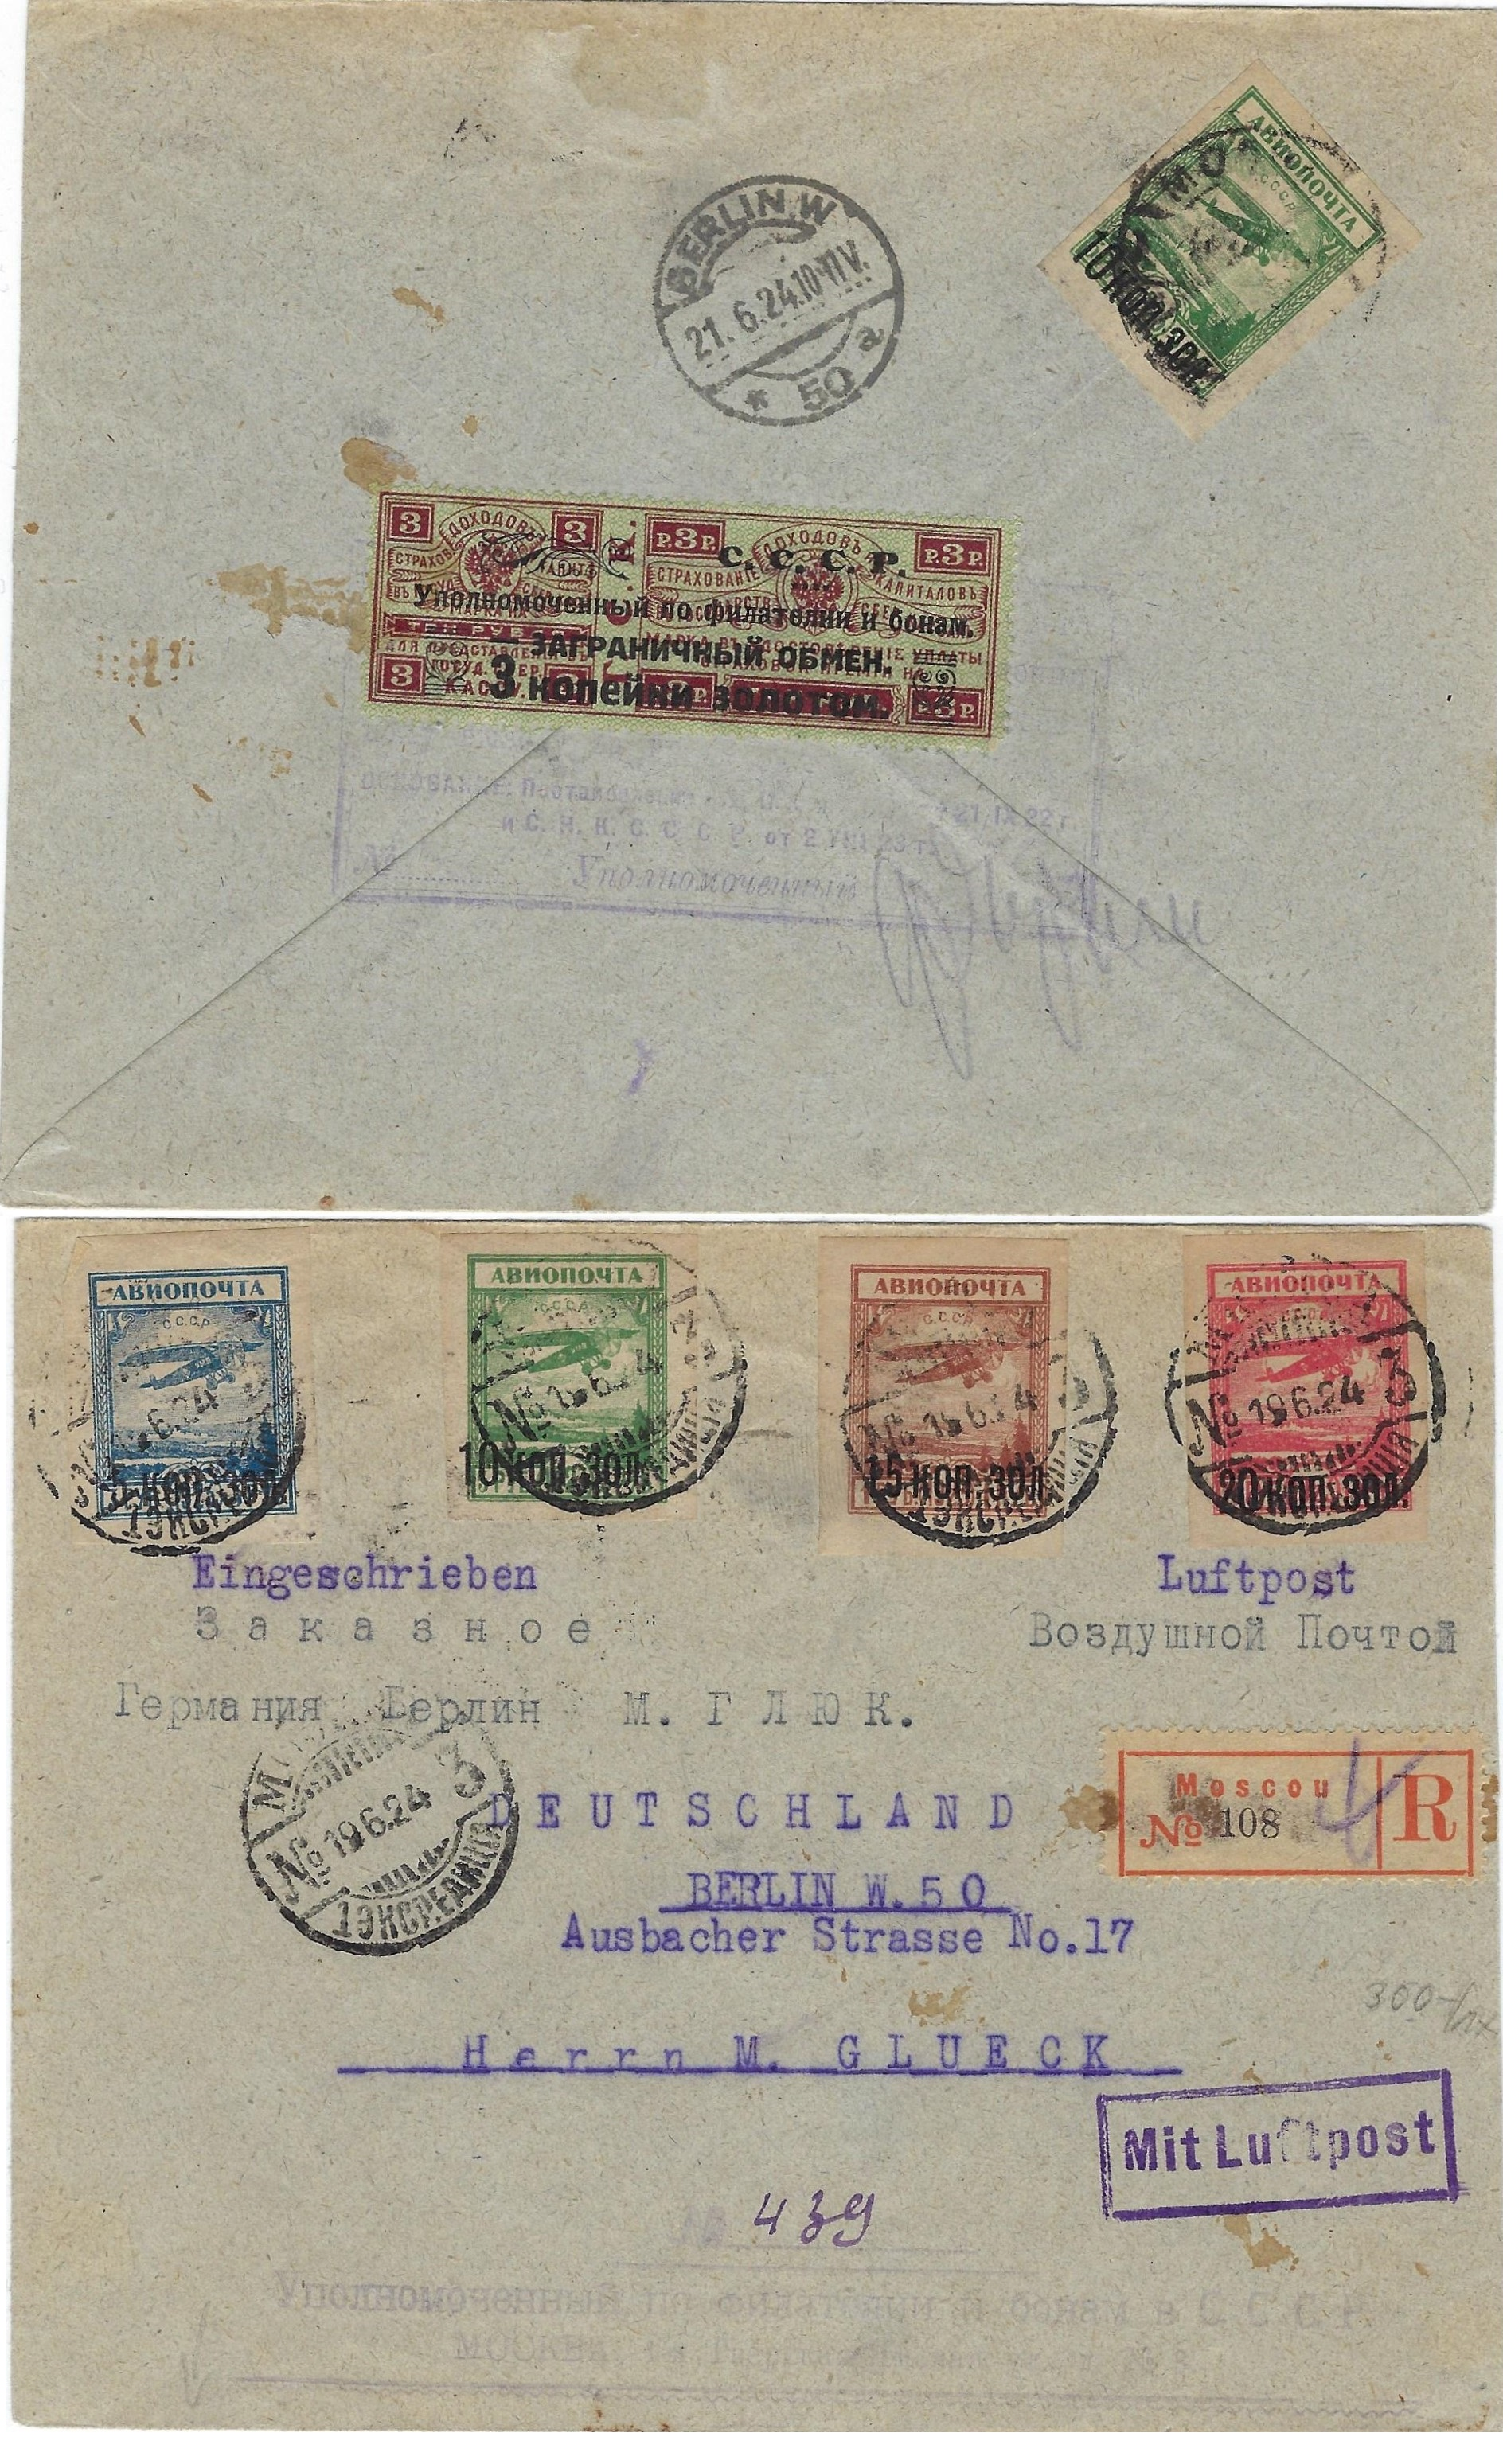 PRussia Specialized - hilatelic Exchage Tax Philatelic ExchangeTax Stamps. Michel 0 Michel 1-2 Michel 1-2 Michel 1-2 Michel 2 Michel 2P Michel 2var Michel 4